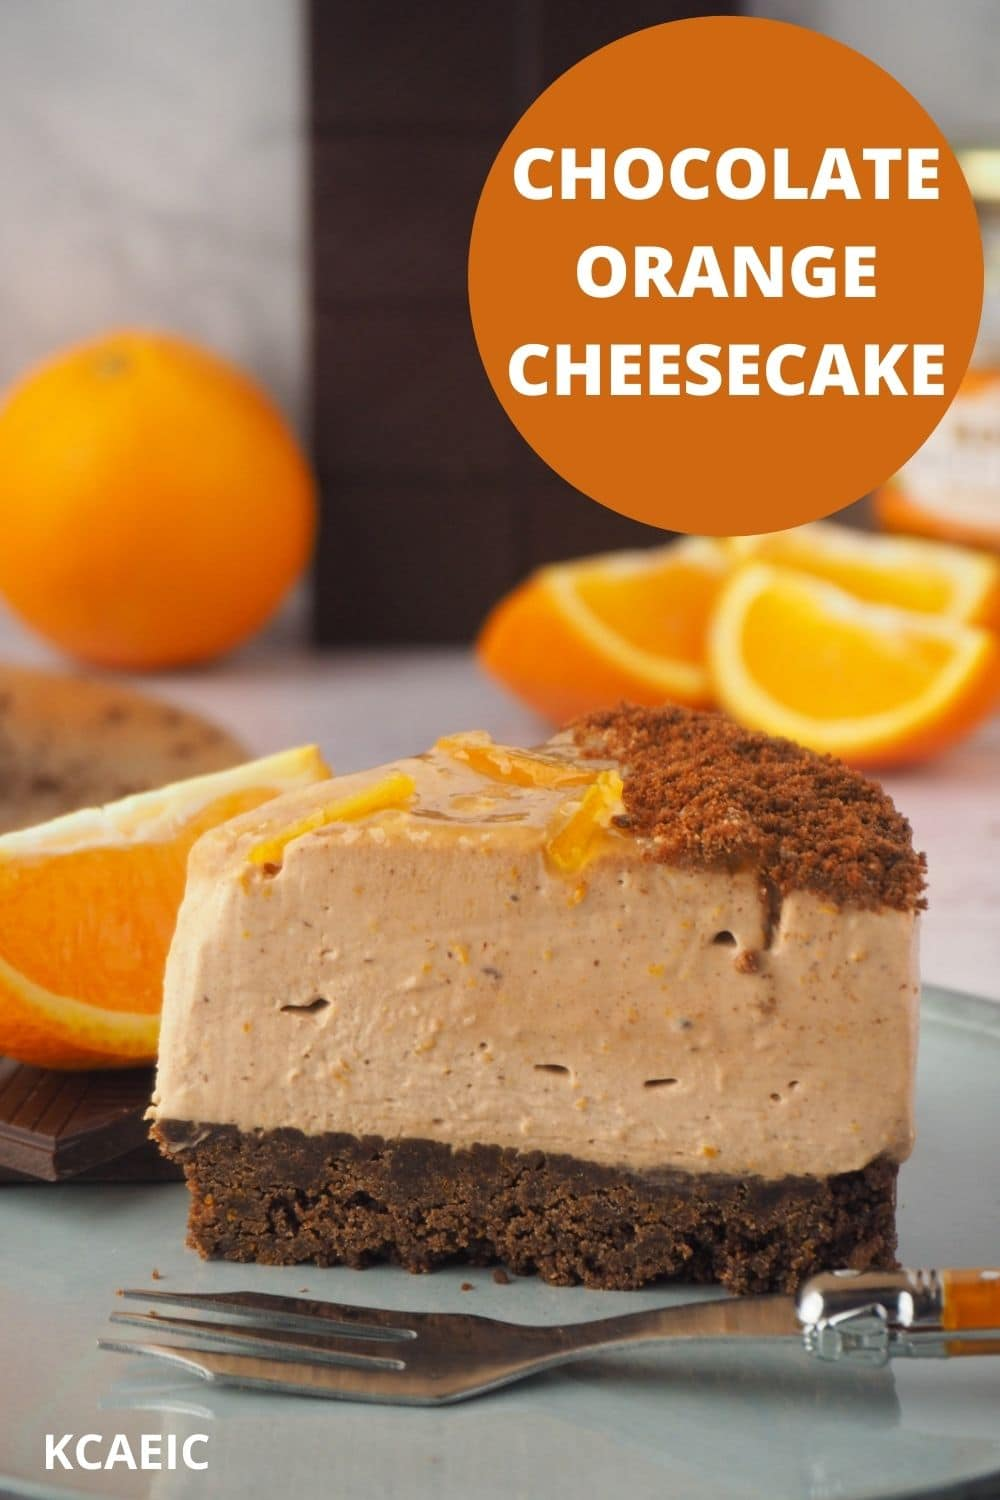 Slice of cheesecake with fork, fresh oranges and dark chocolate in the background and text overlay, chocolate orange cheesecake and KCAEIC.